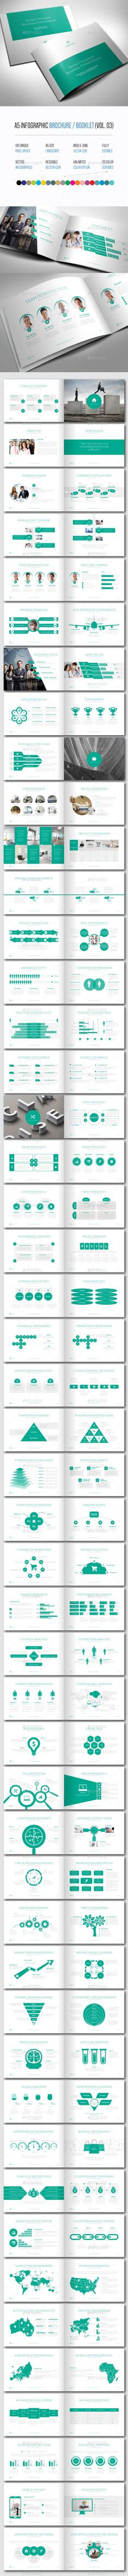 Best Minimalist Brochure Template Images On Pinterest - Template for a brochure